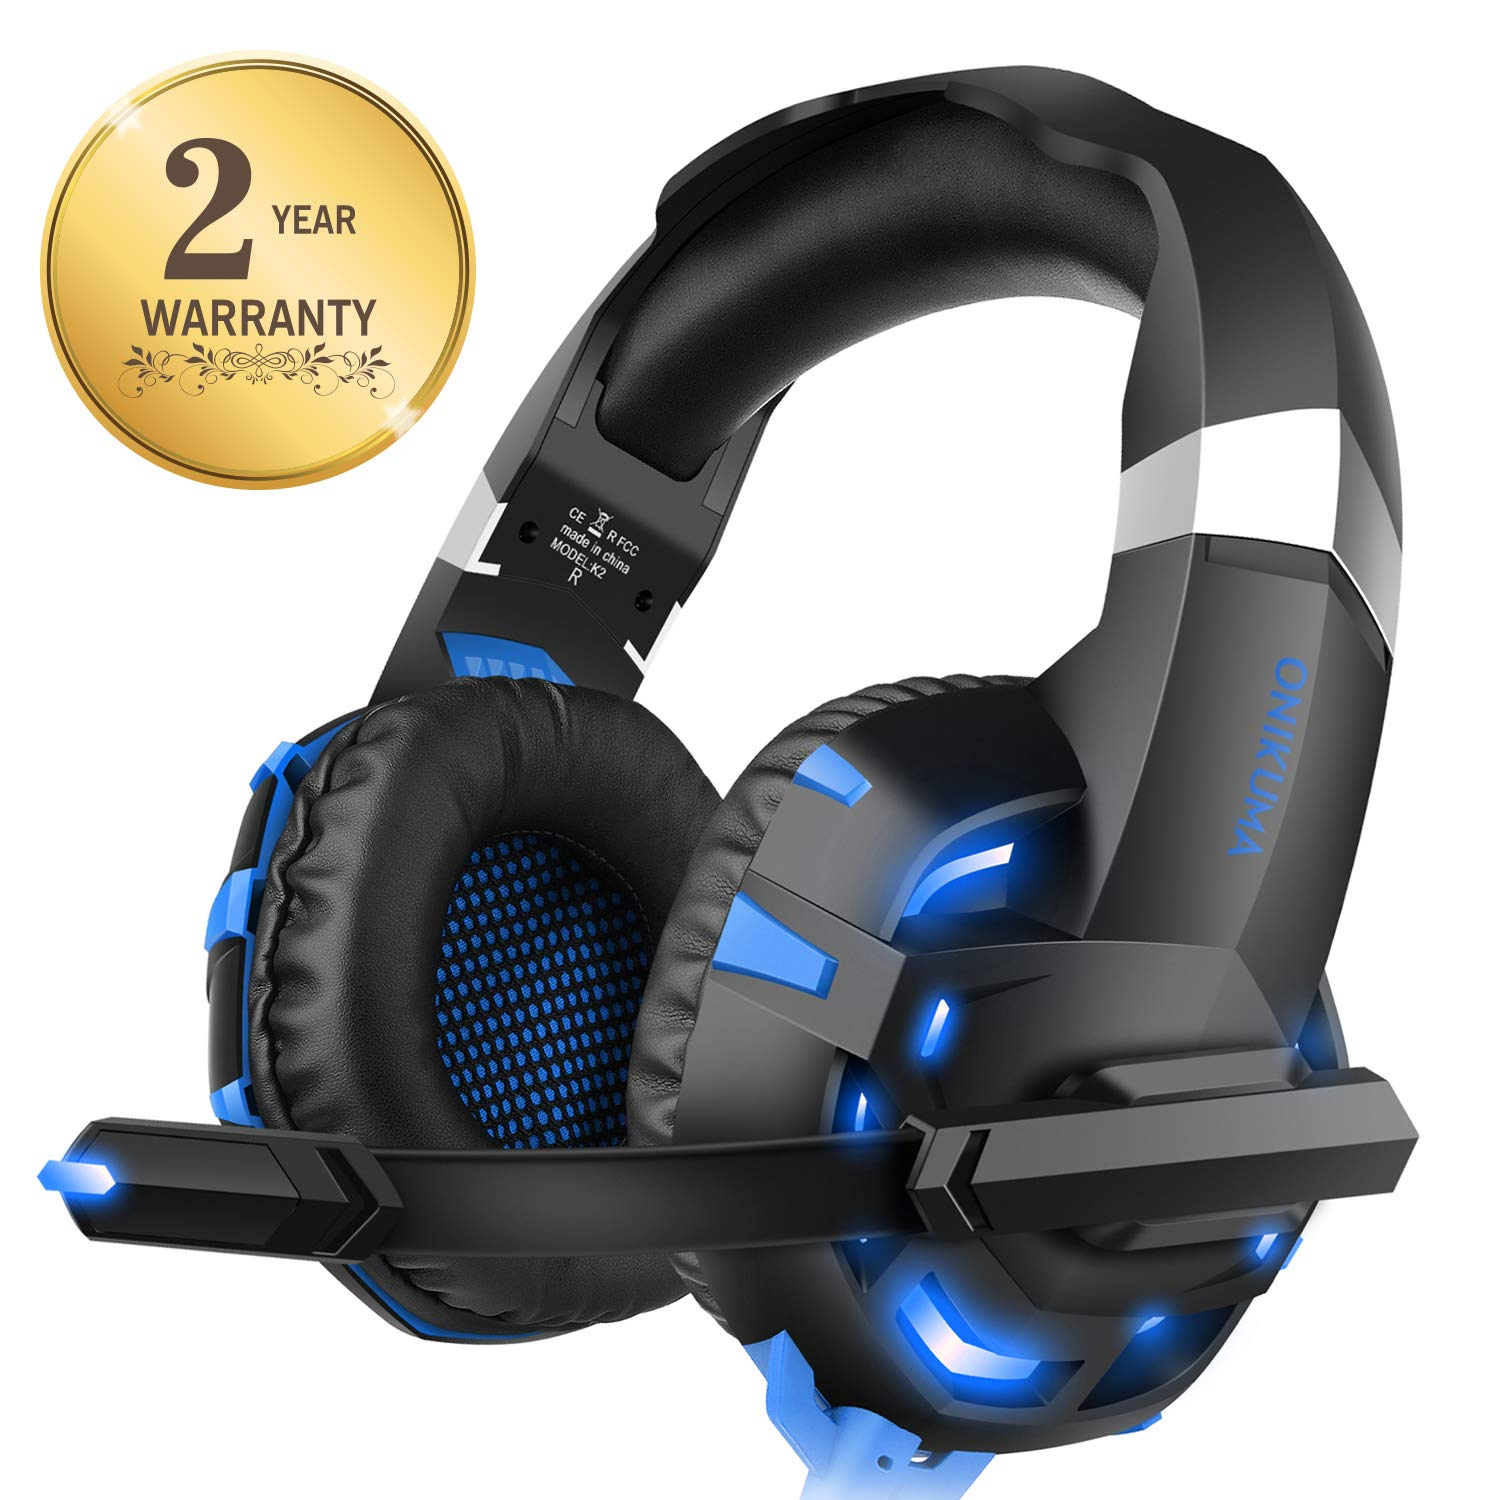 f5c39af618b Xbox one Headset for PS4, WILLNORN K2 Gaming Headset with Mic Noise  Cancelling Over Ear Headphones for PS4, PC Controller, Laptop, LED Light,  Stereo Sound ...